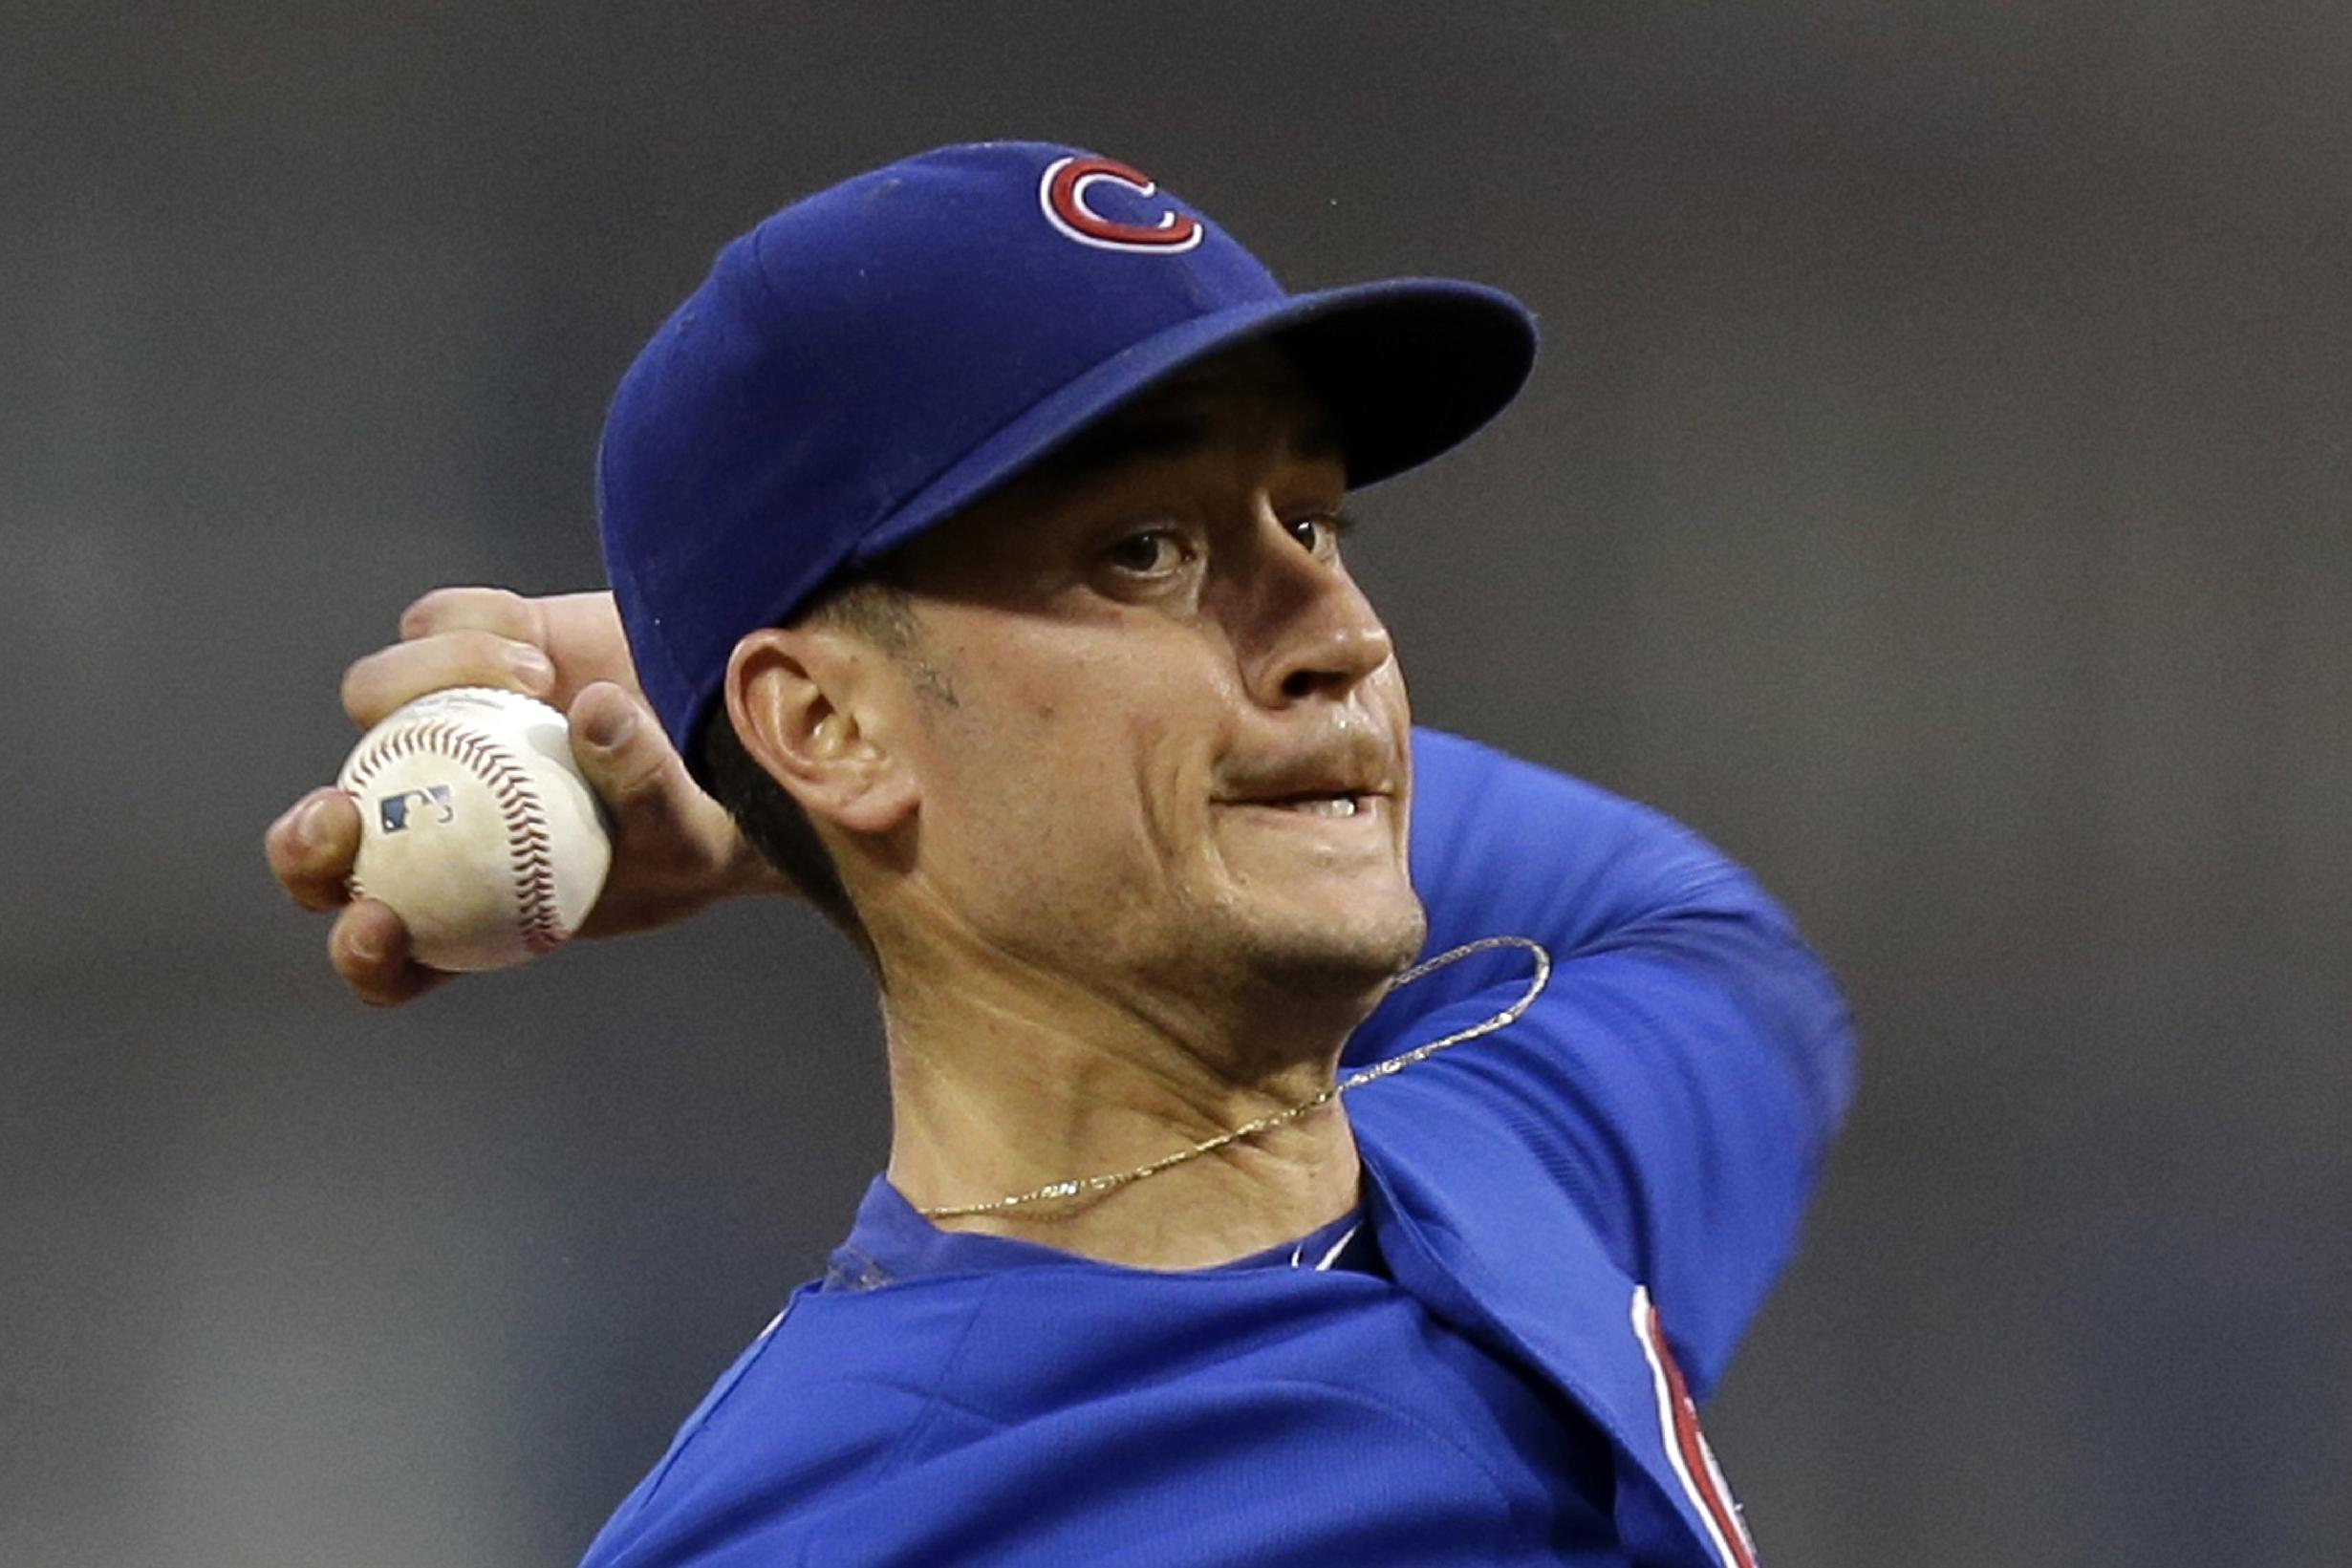 Chicago Cubs starting pitcher Chris Rusin delivers during the first inning of a baseball game against the Pittsburgh Pirates in Pittsburgh, Thursday, Sept. 12, 2013